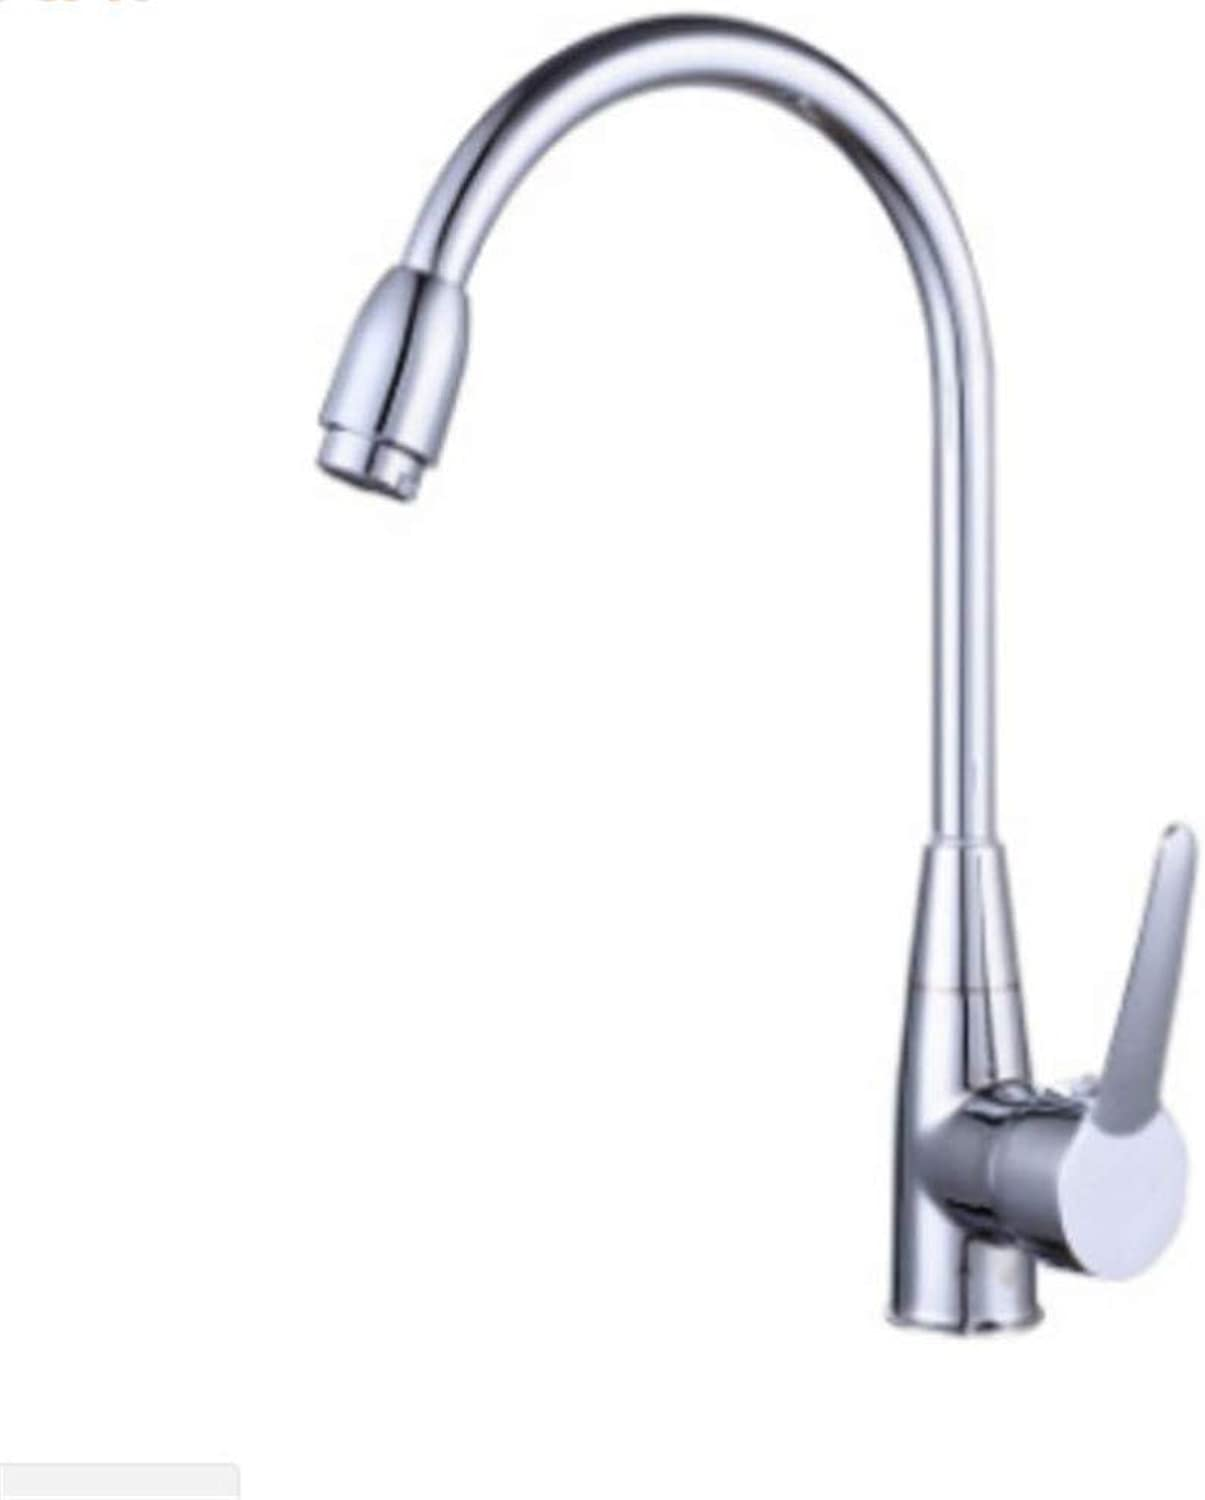 Water Tap Kitchen Taps Faucet Modern Kitchen Sink Taps Stainless Steelcool and Hot Water for Kitchen Sink and Vegetable Basin Tap